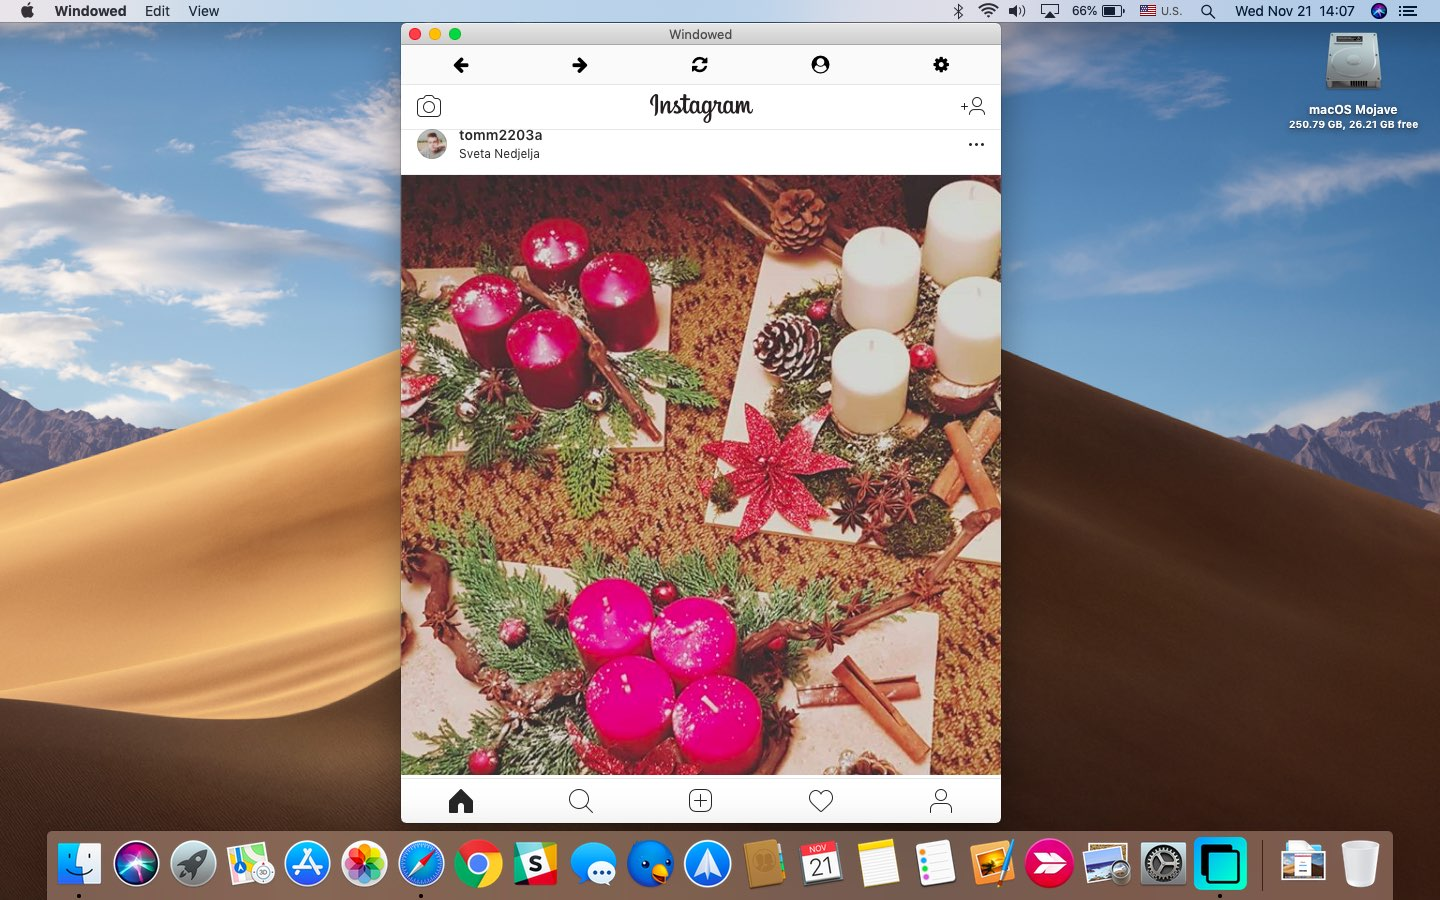 Windowed lets you upload and view Instagram posts on your Mac